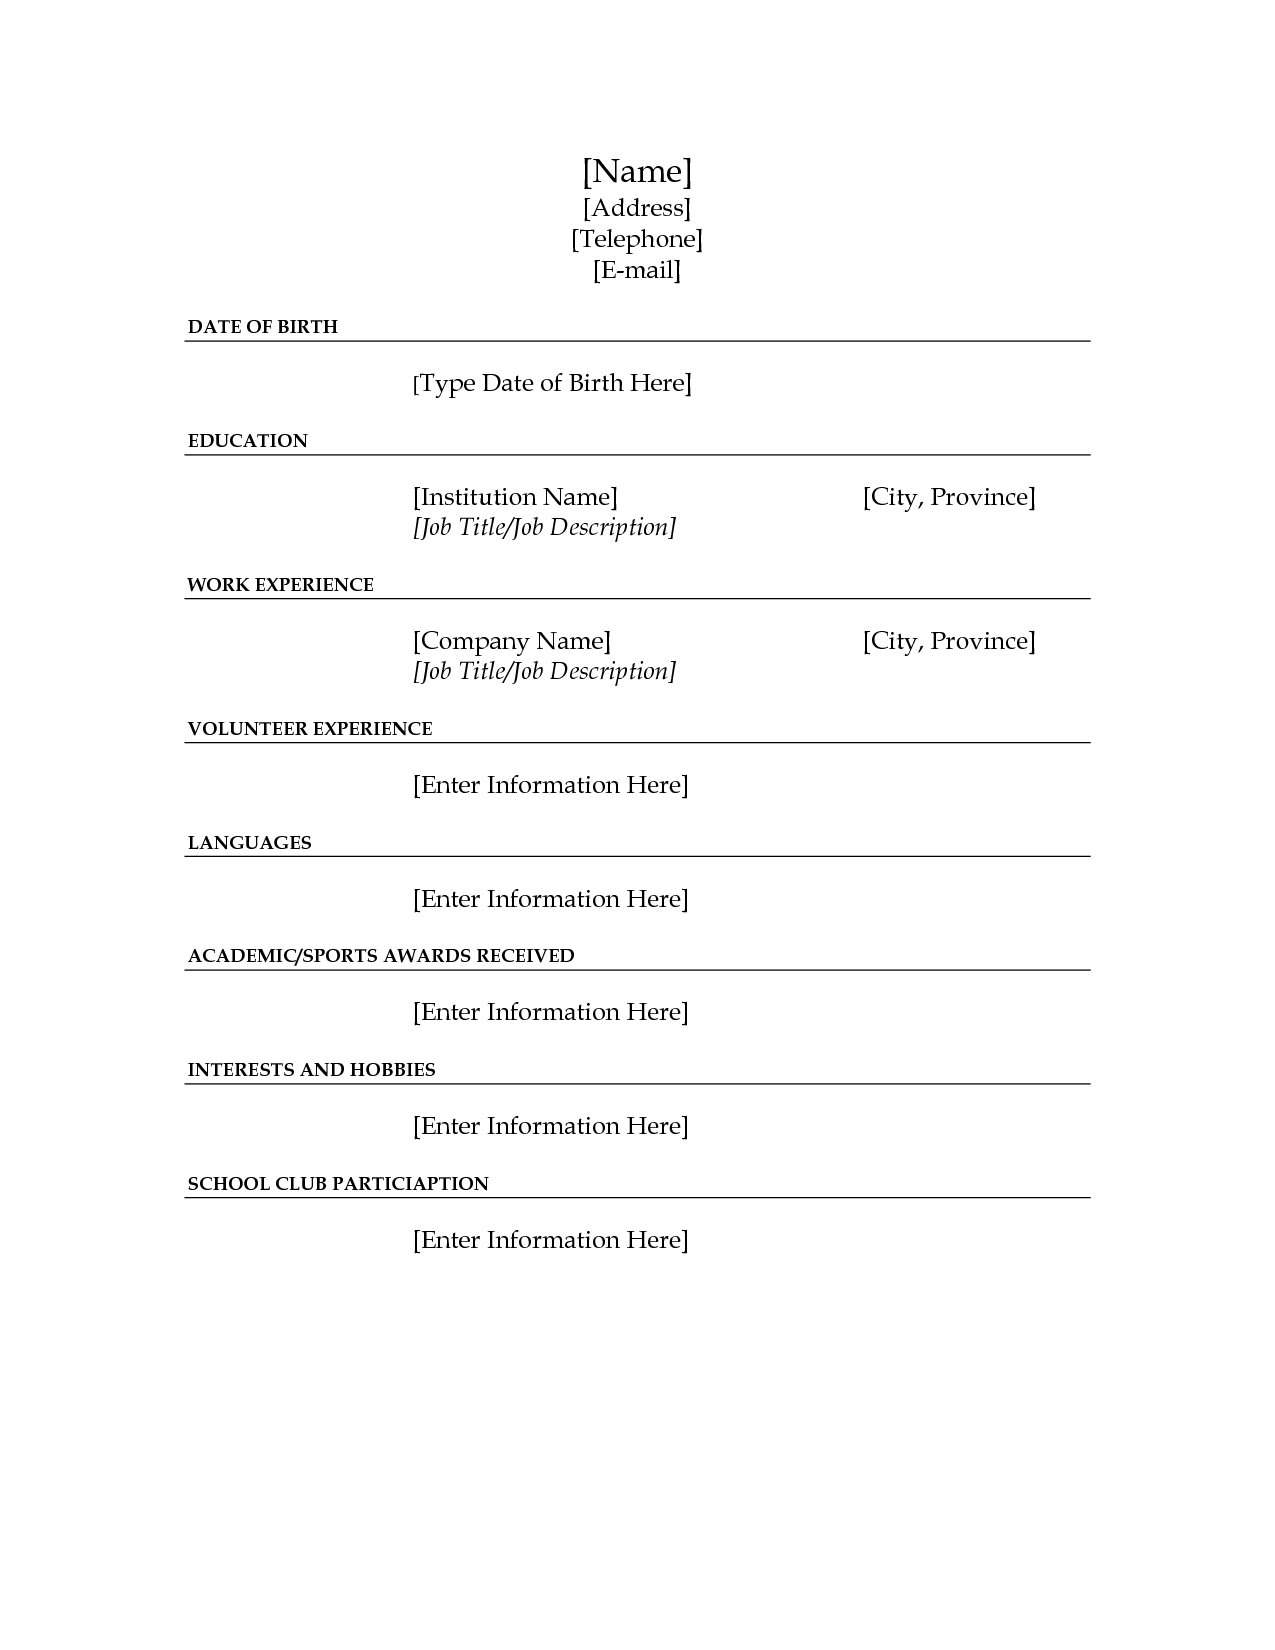 Fill In The Blank Resume Templates Dicle Sticken Co